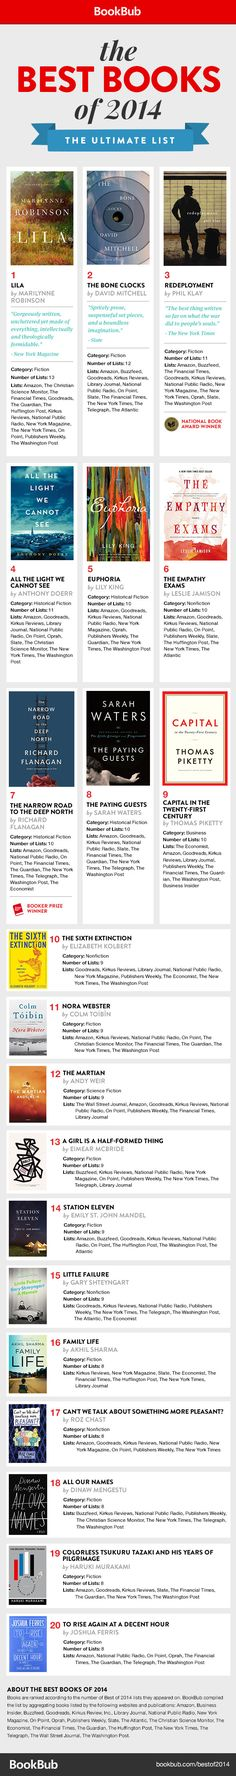 THE best books of 2014 as determined by Huff Post. It's the ultimate best book list of 2014!!